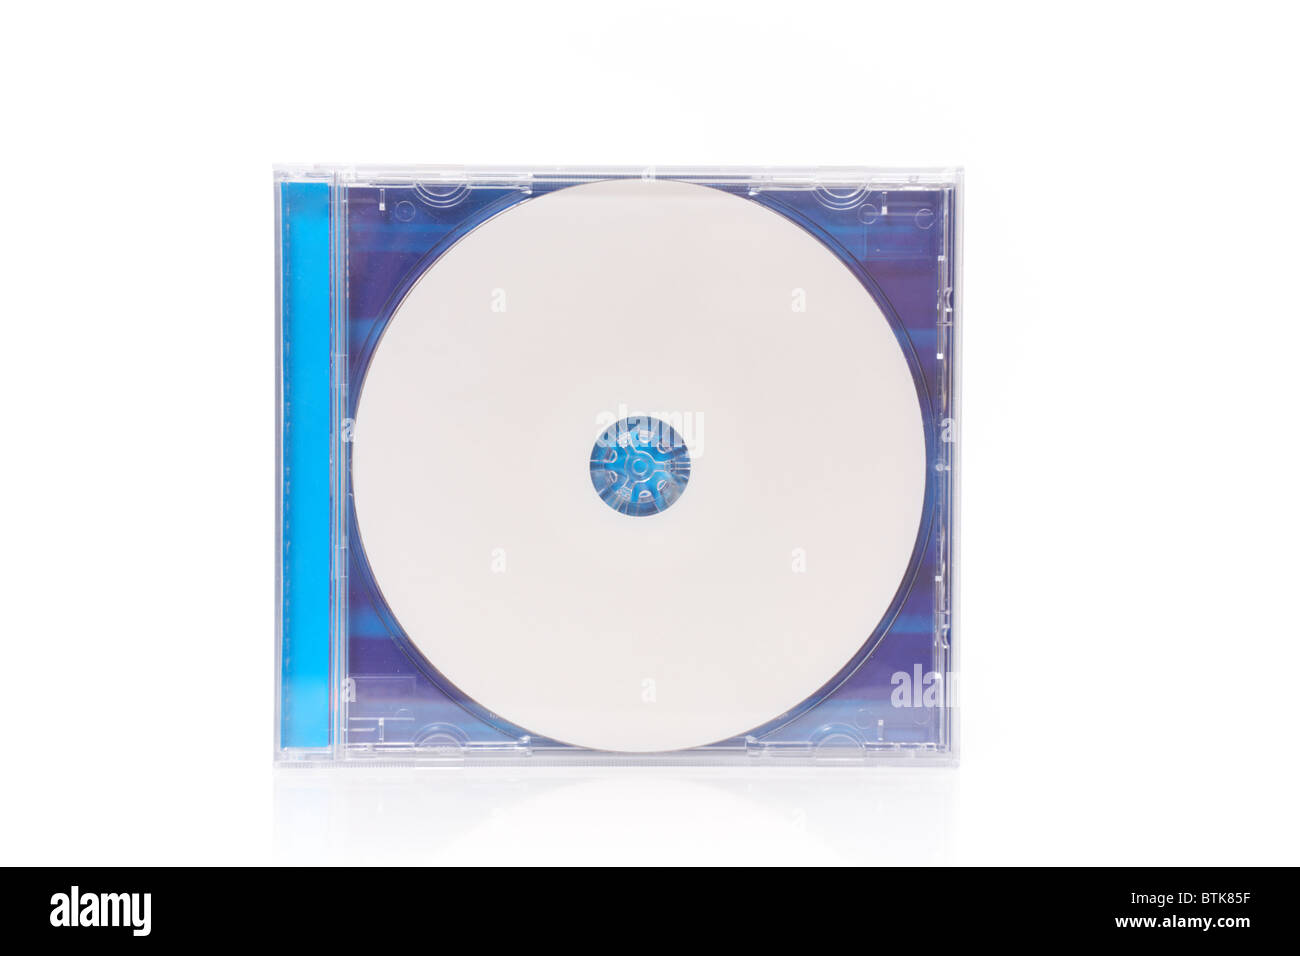 compact disc in box - Stock Image